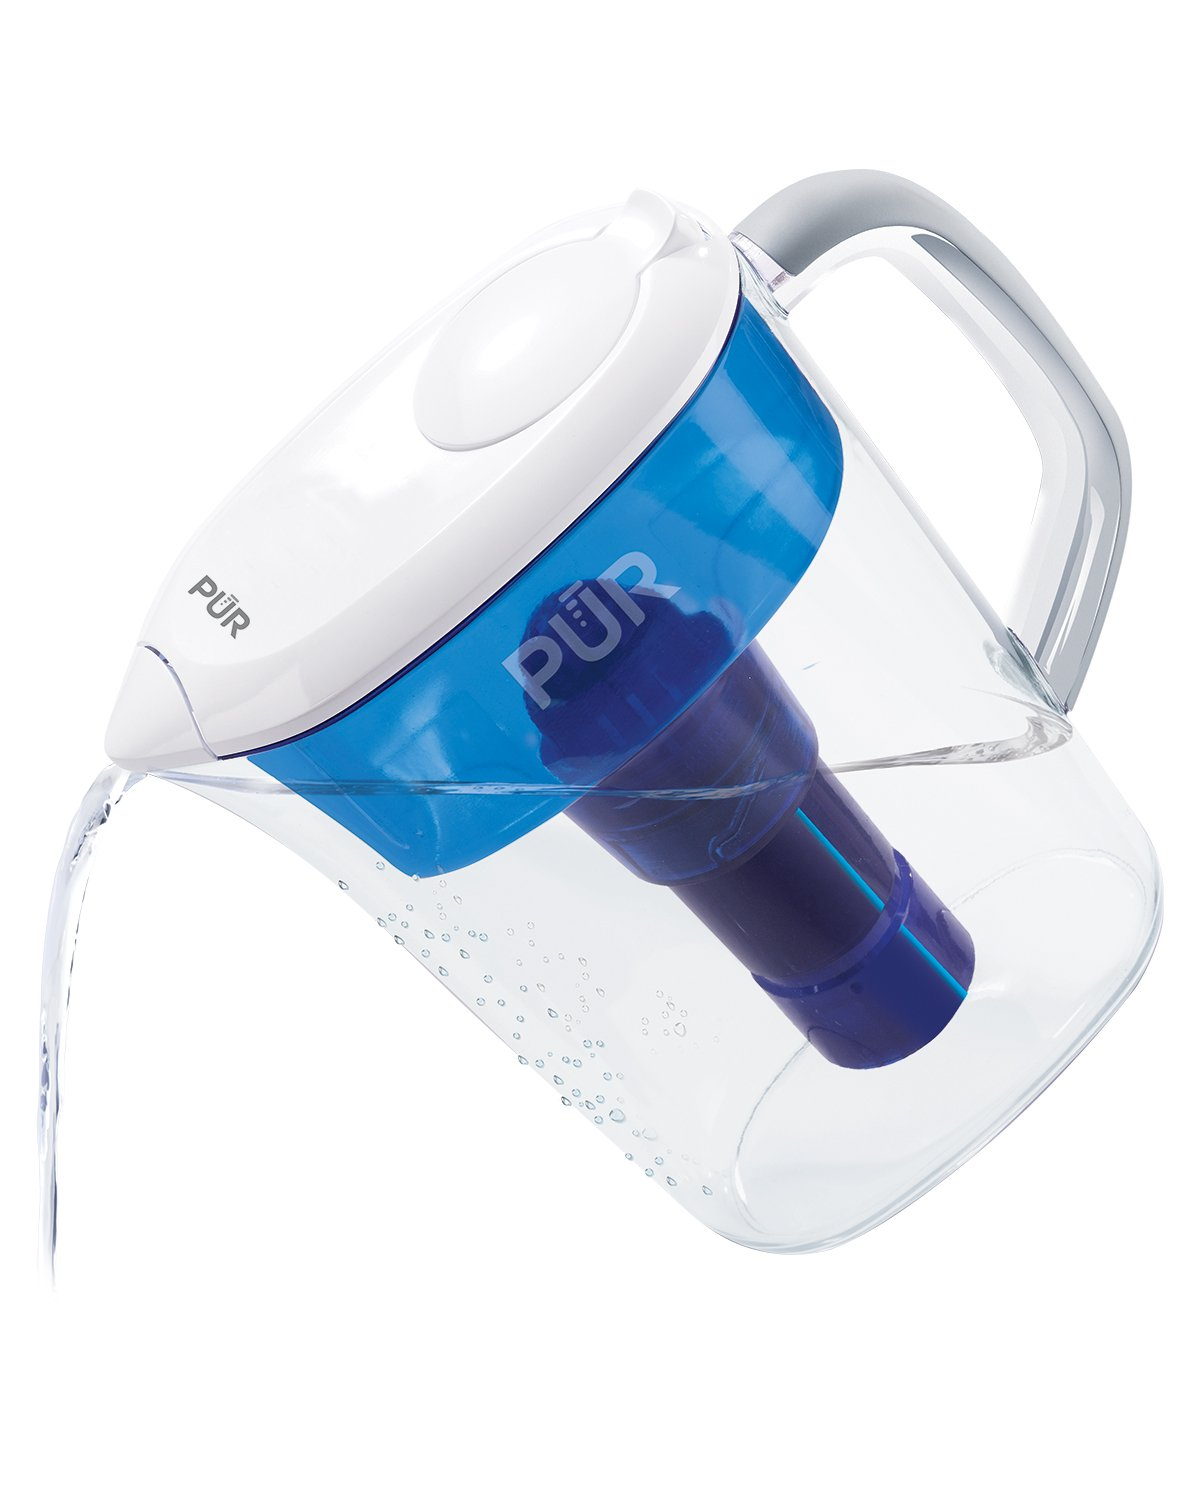 PUR 7 Cup Basic Water Filtration Pitcher, Filter Helps Reduce Chlorine Taste and Odor, Filter Provides Up To 40 Gallons or About 2 Months of Filtered Water by PUR (Image #2)